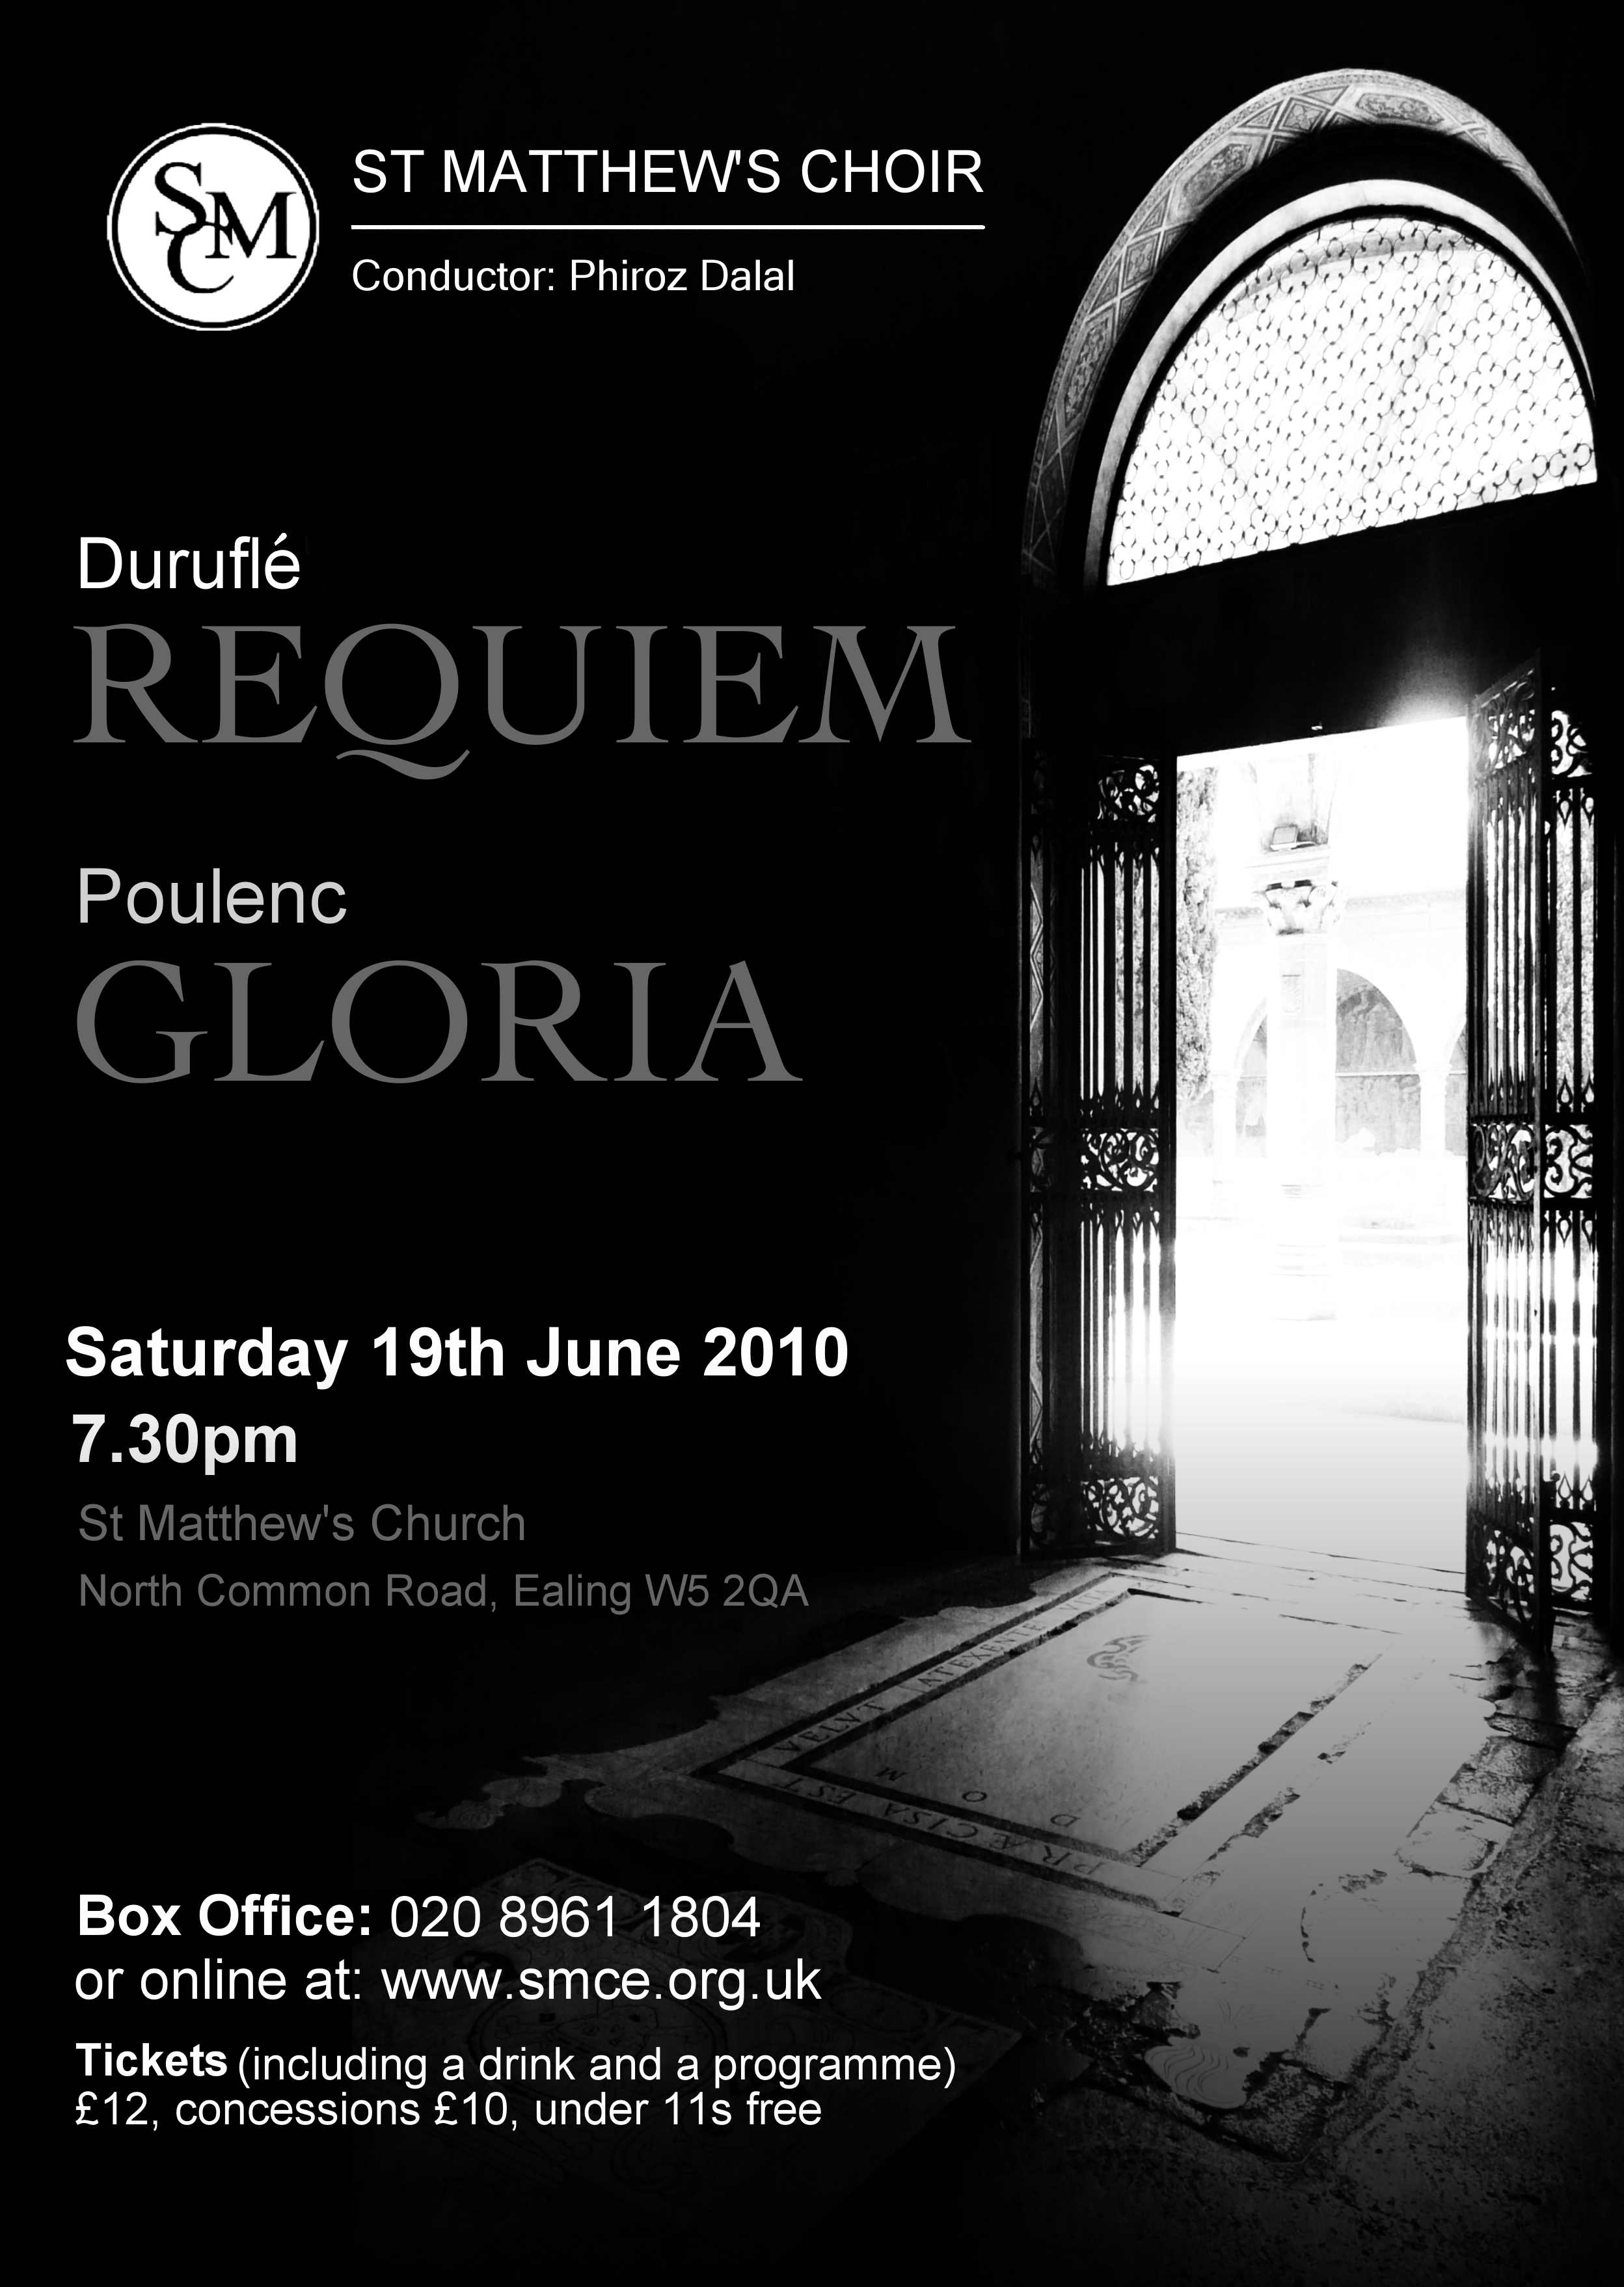 Durufle Requiem & Poulenc Gloria